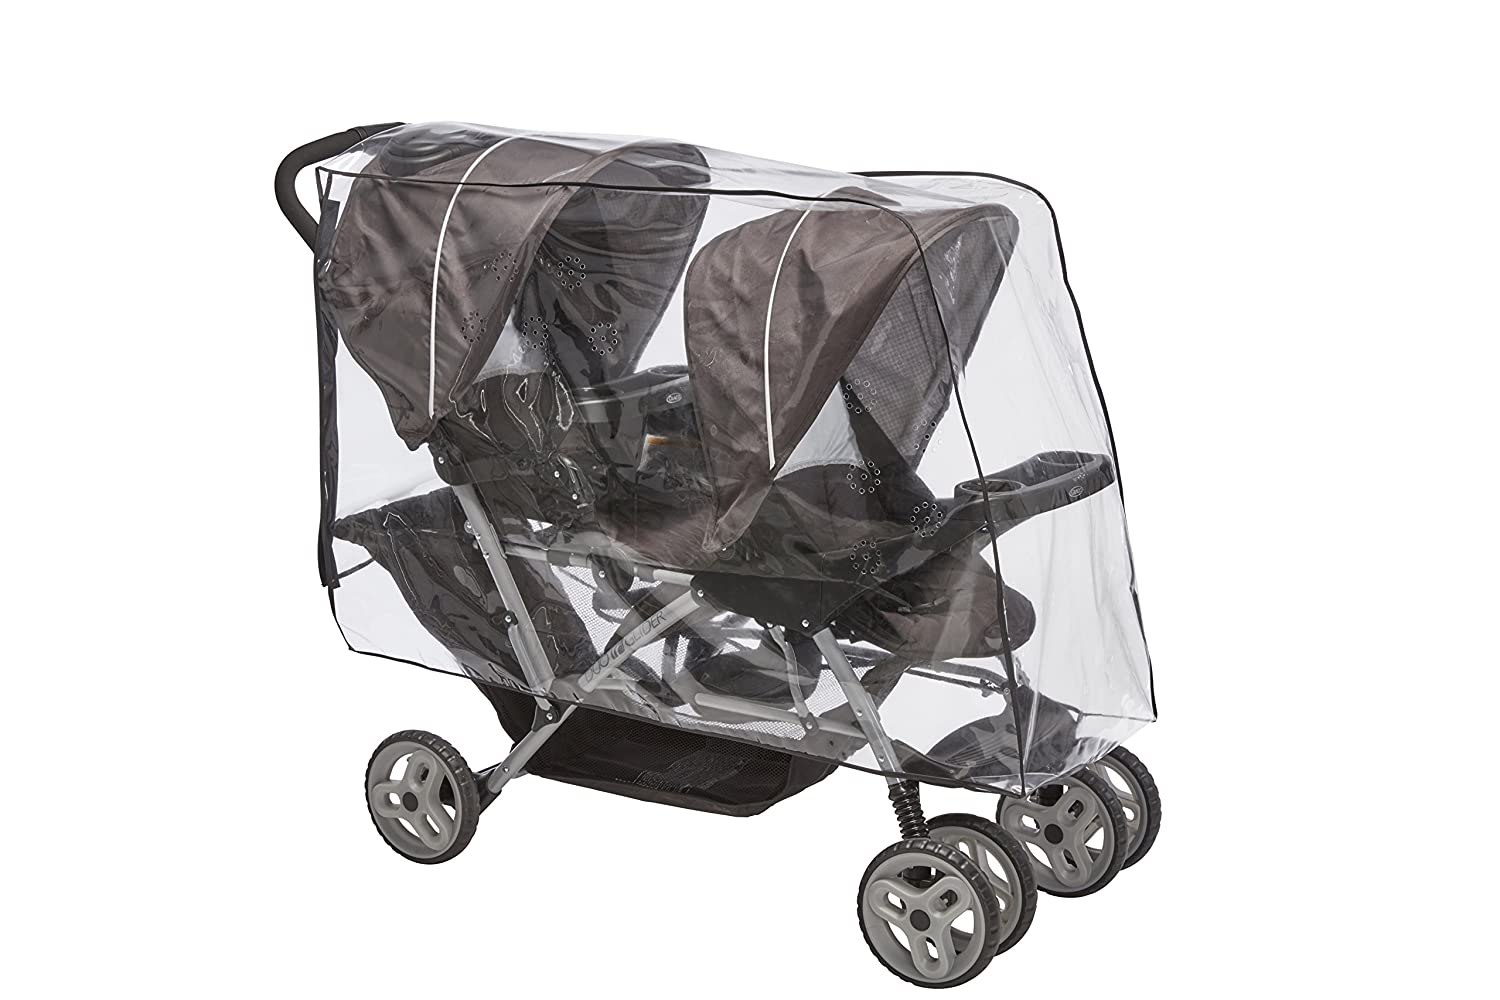 Sashas Premium Series Rain and Wind Cover for Graco DuoGlider Click Connect Stroller